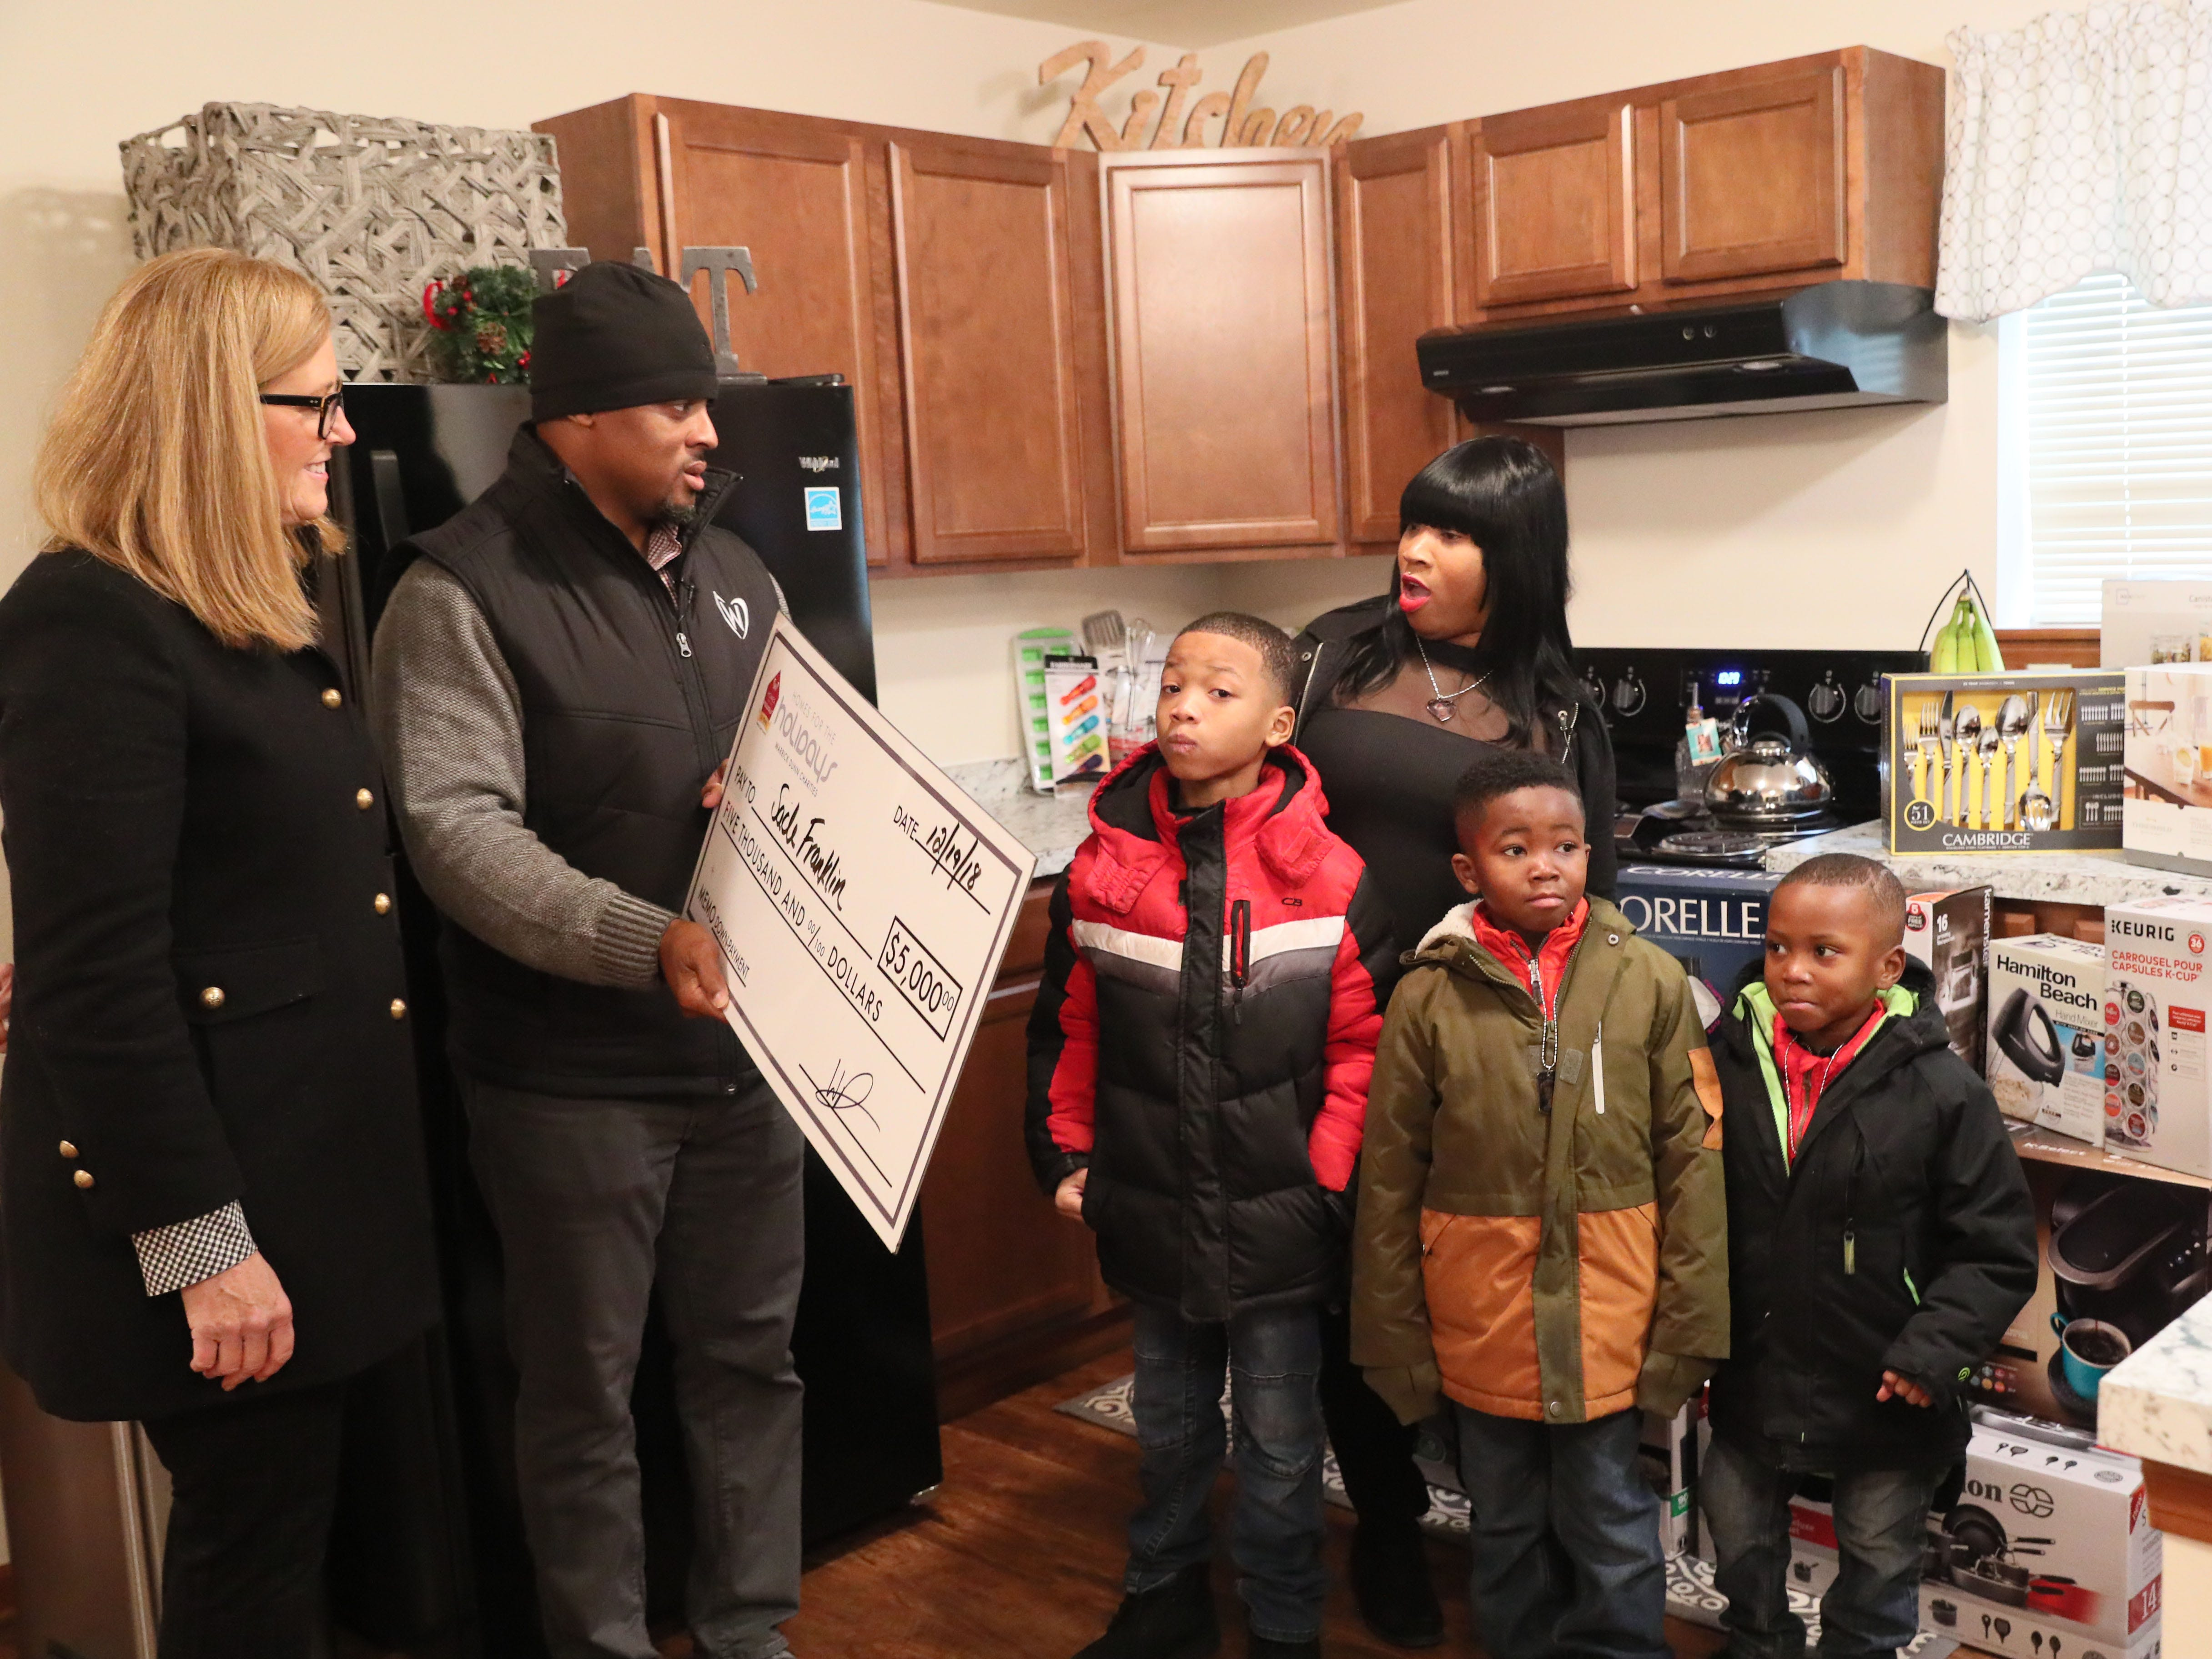 Warrick Dunn hands Sade and her children a check for $5,000 to be put toward their down payment. The check is from Keller Williams Realty in Milwaukee, which was represented by Maureen Stalle (left).